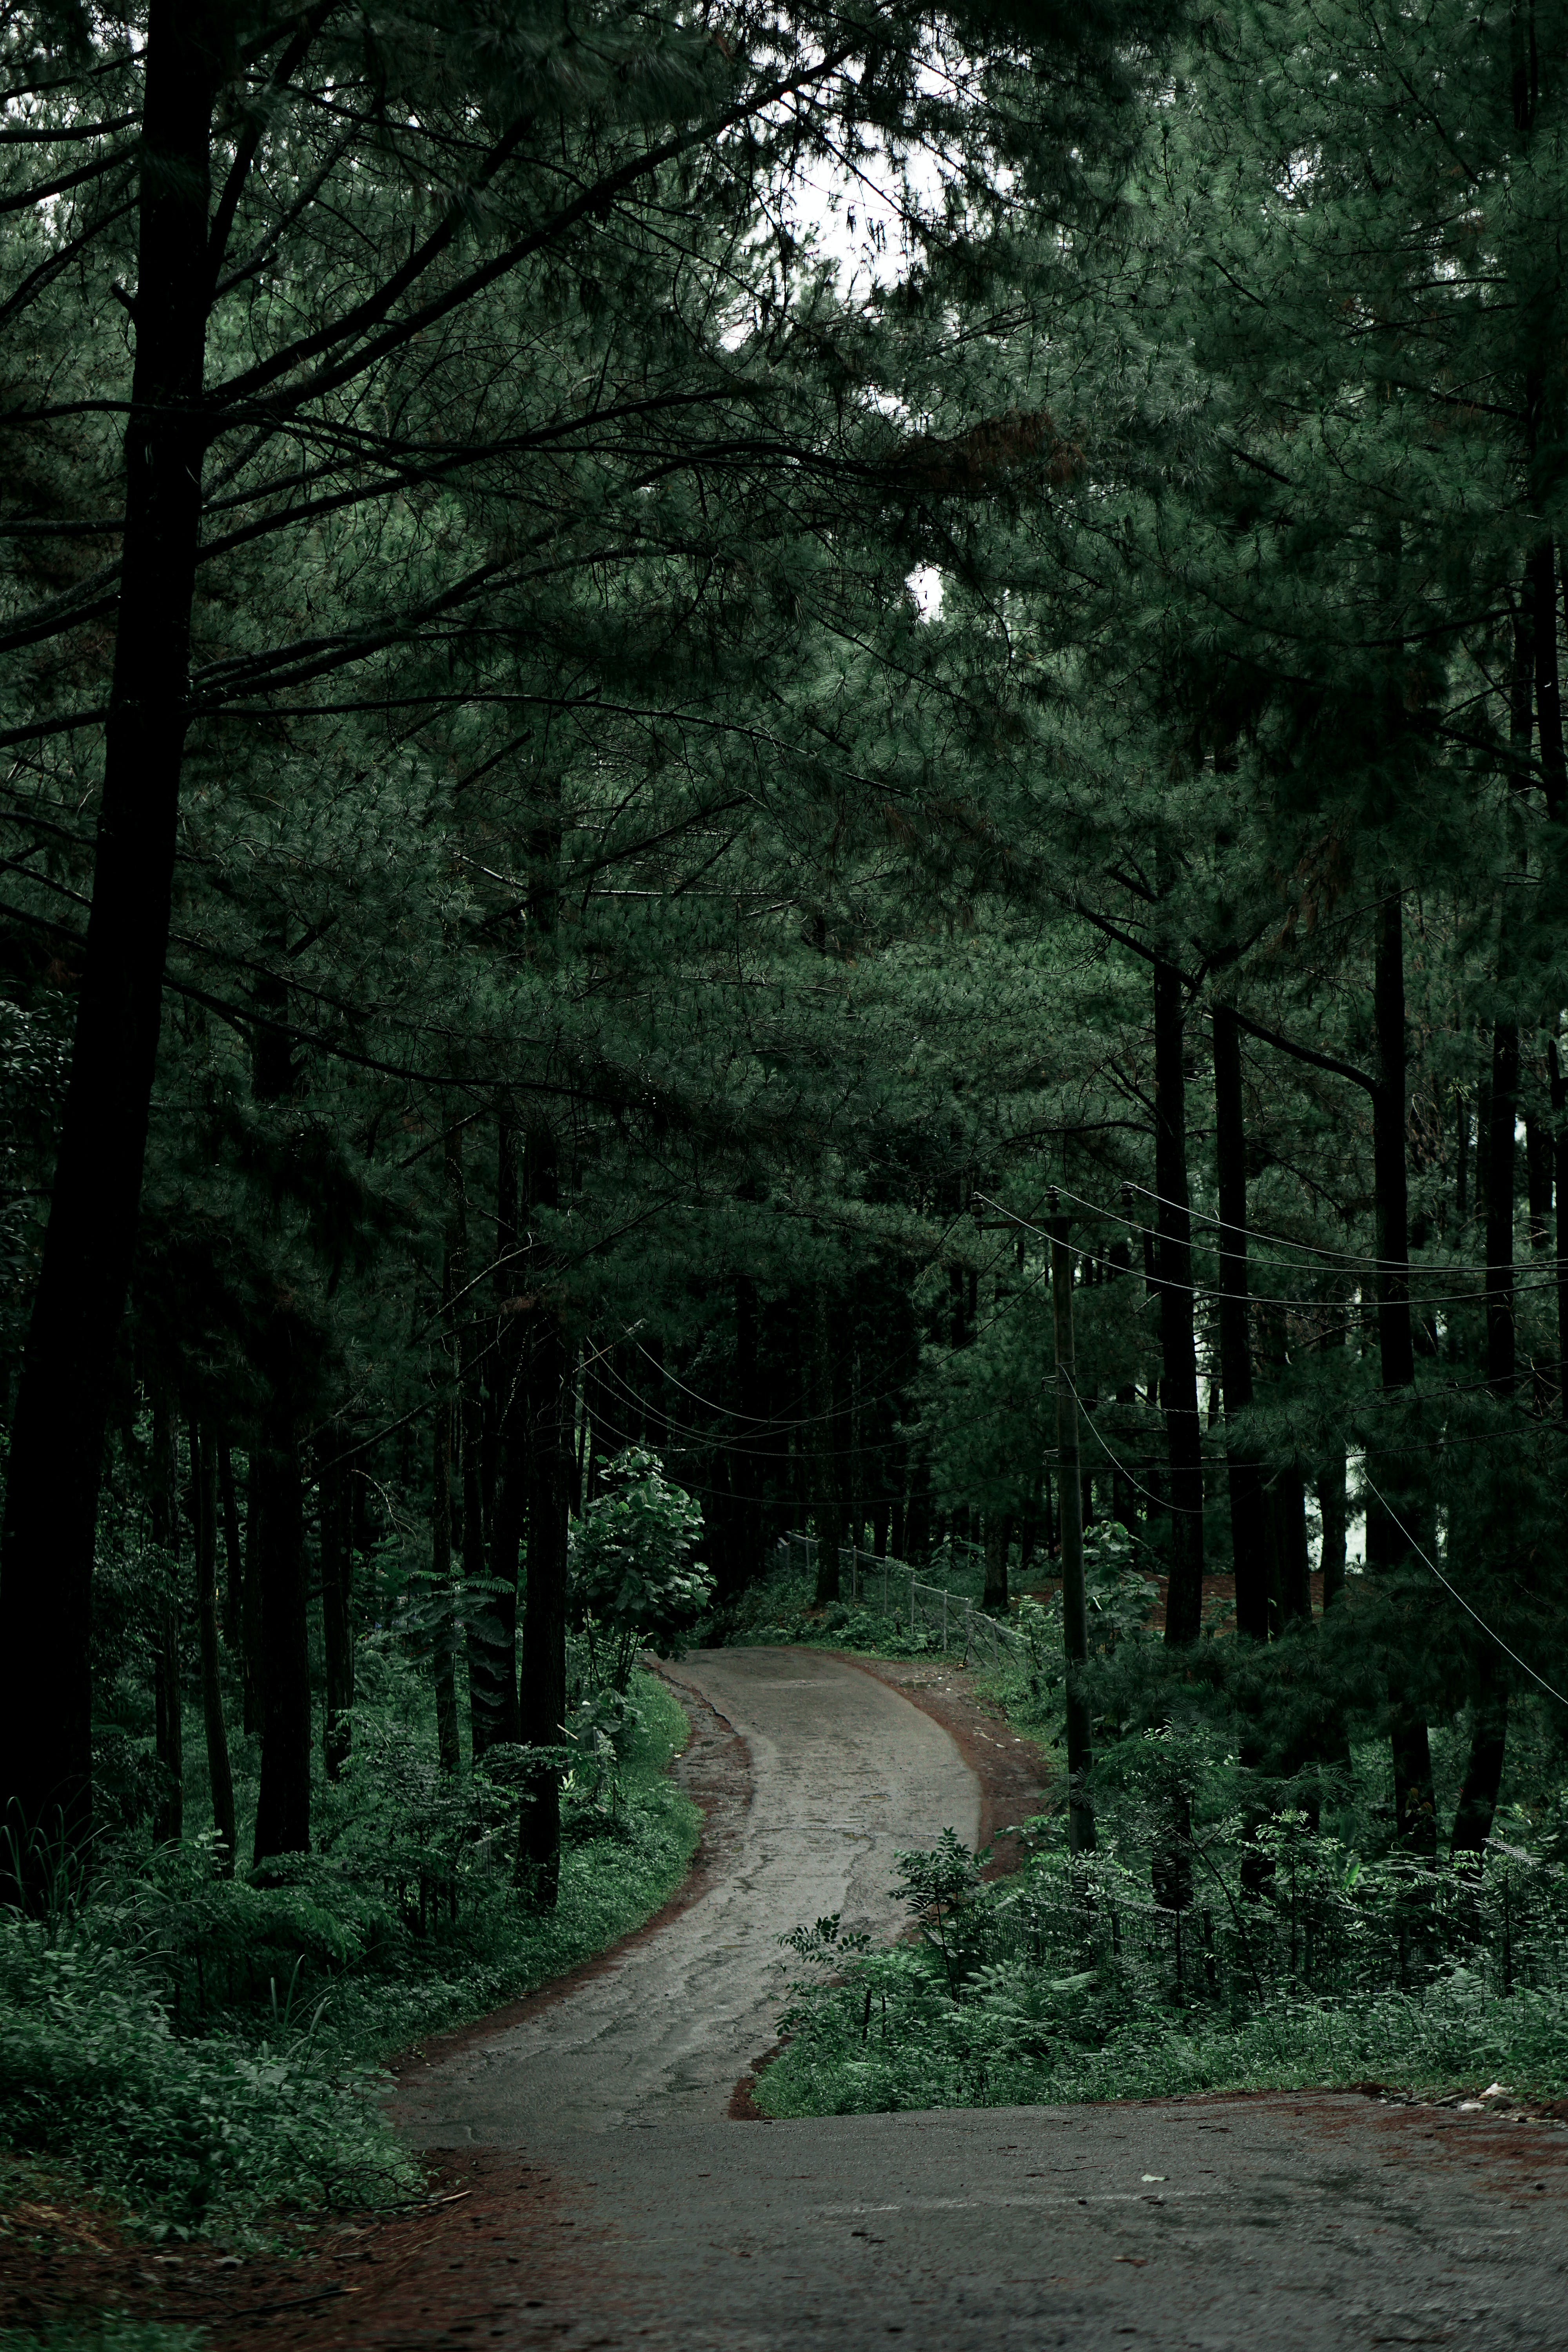 Free stock photo of road, nature, forest, hills